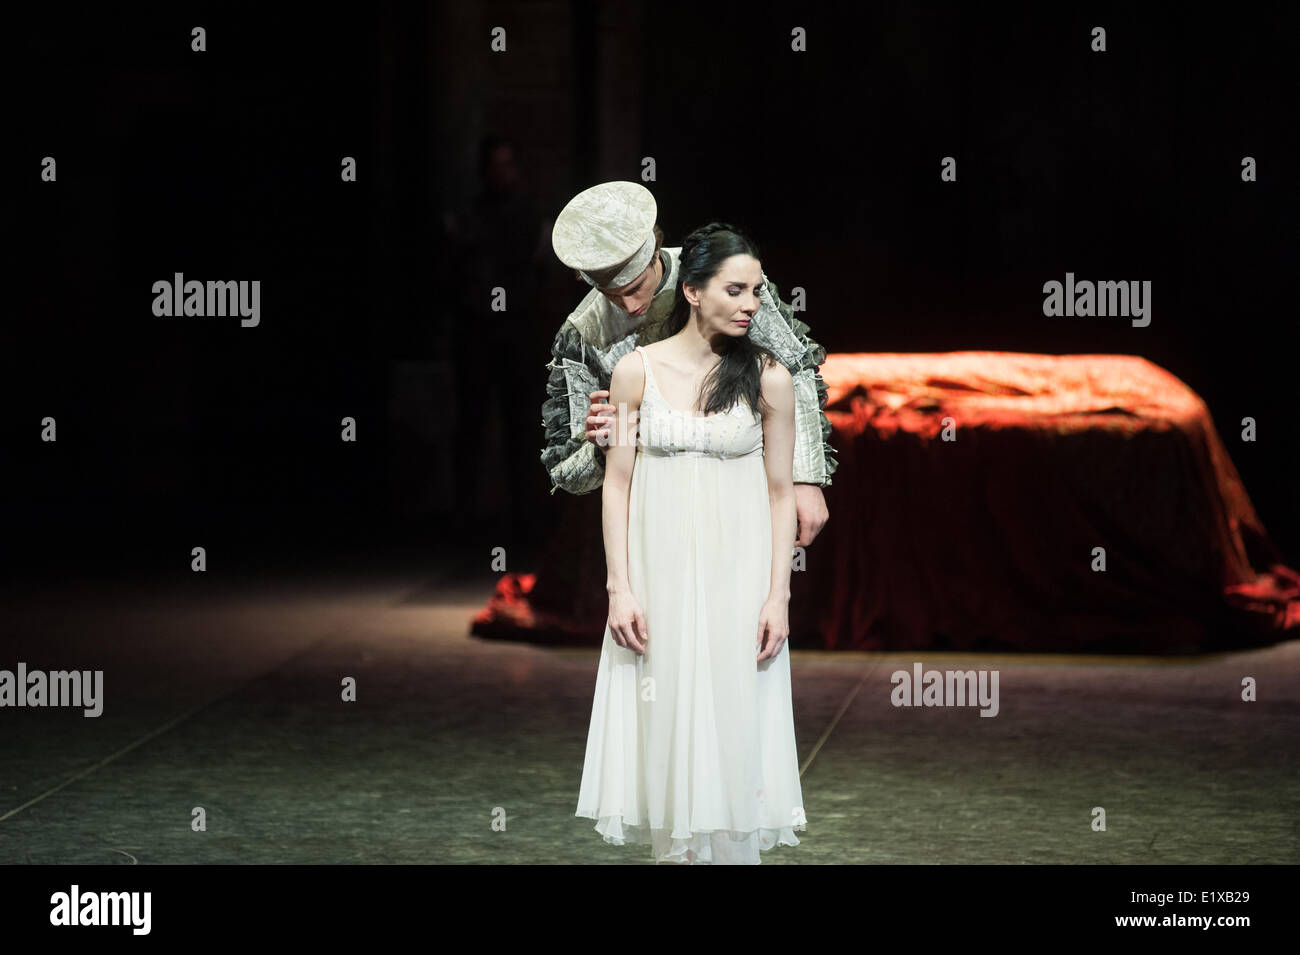 The English National Ballet presents the dress rehearsal for Romeo and Juliet starring Tamara Rojo and Carlos Acosta - Stock Image